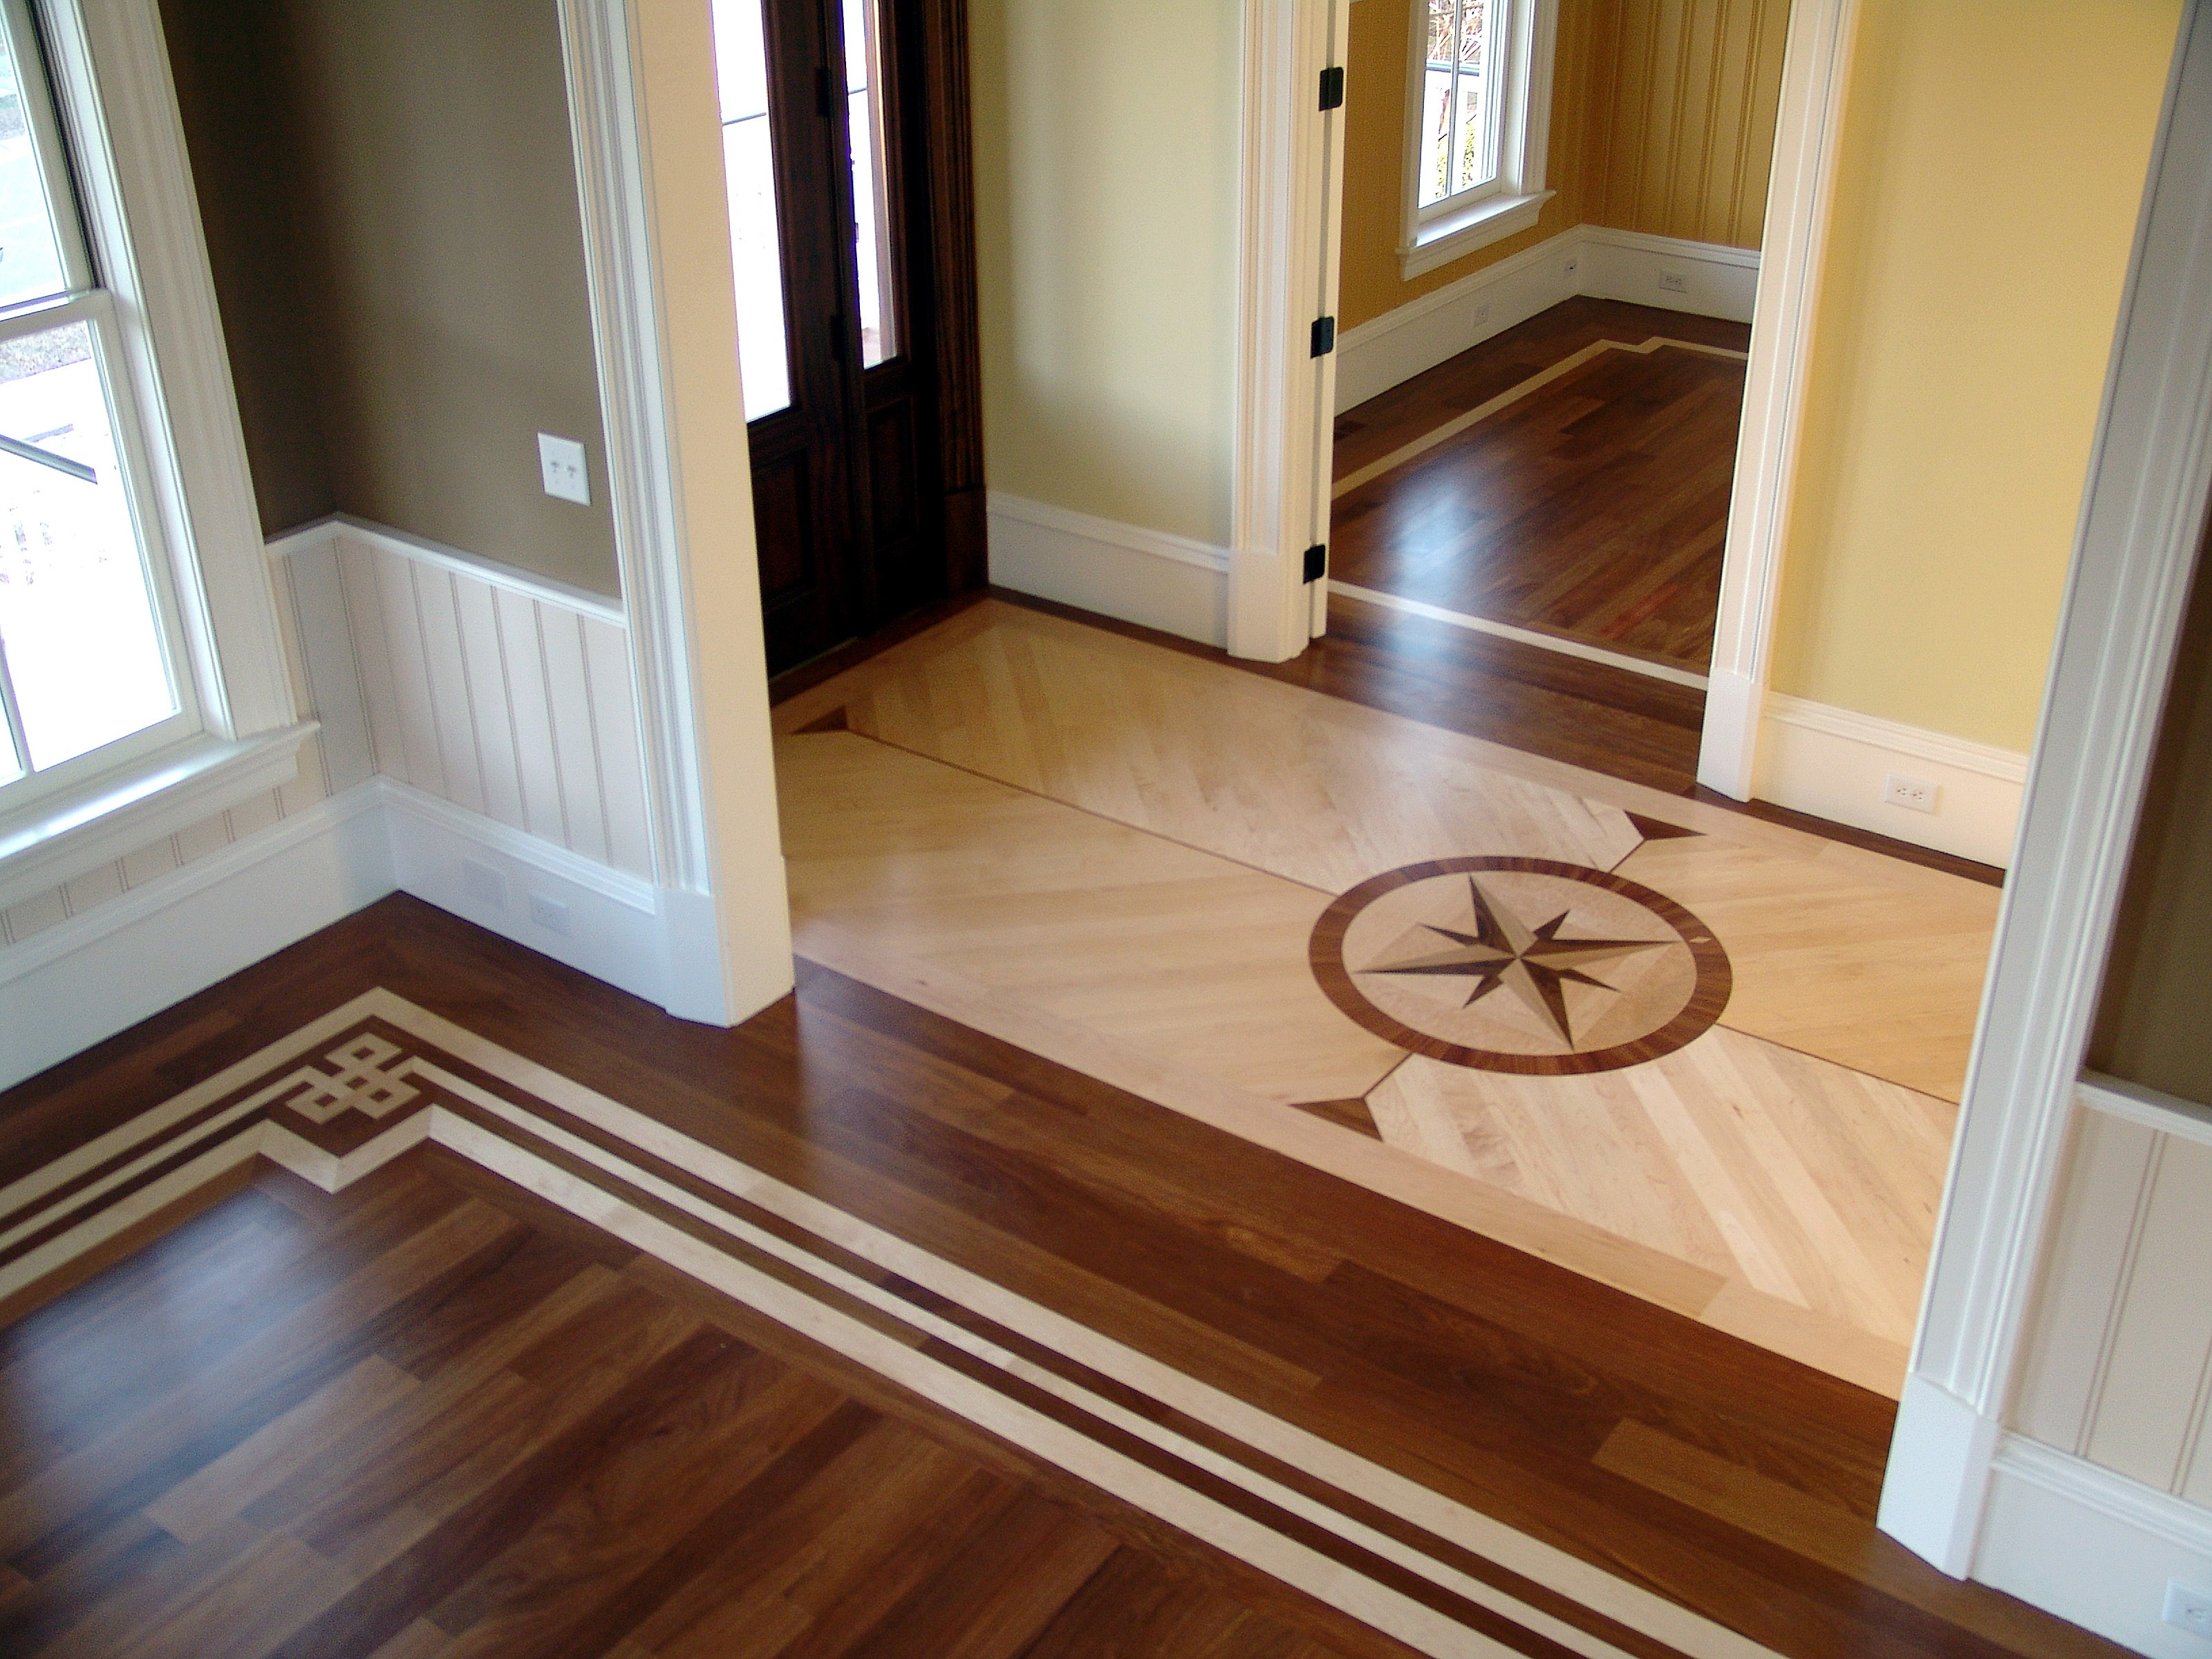 Hardwood Floor Refinishing Vs Replacing Of Imperial Wood Floors Madison Wi Hardwood Floors Hardwood Floor for Home A